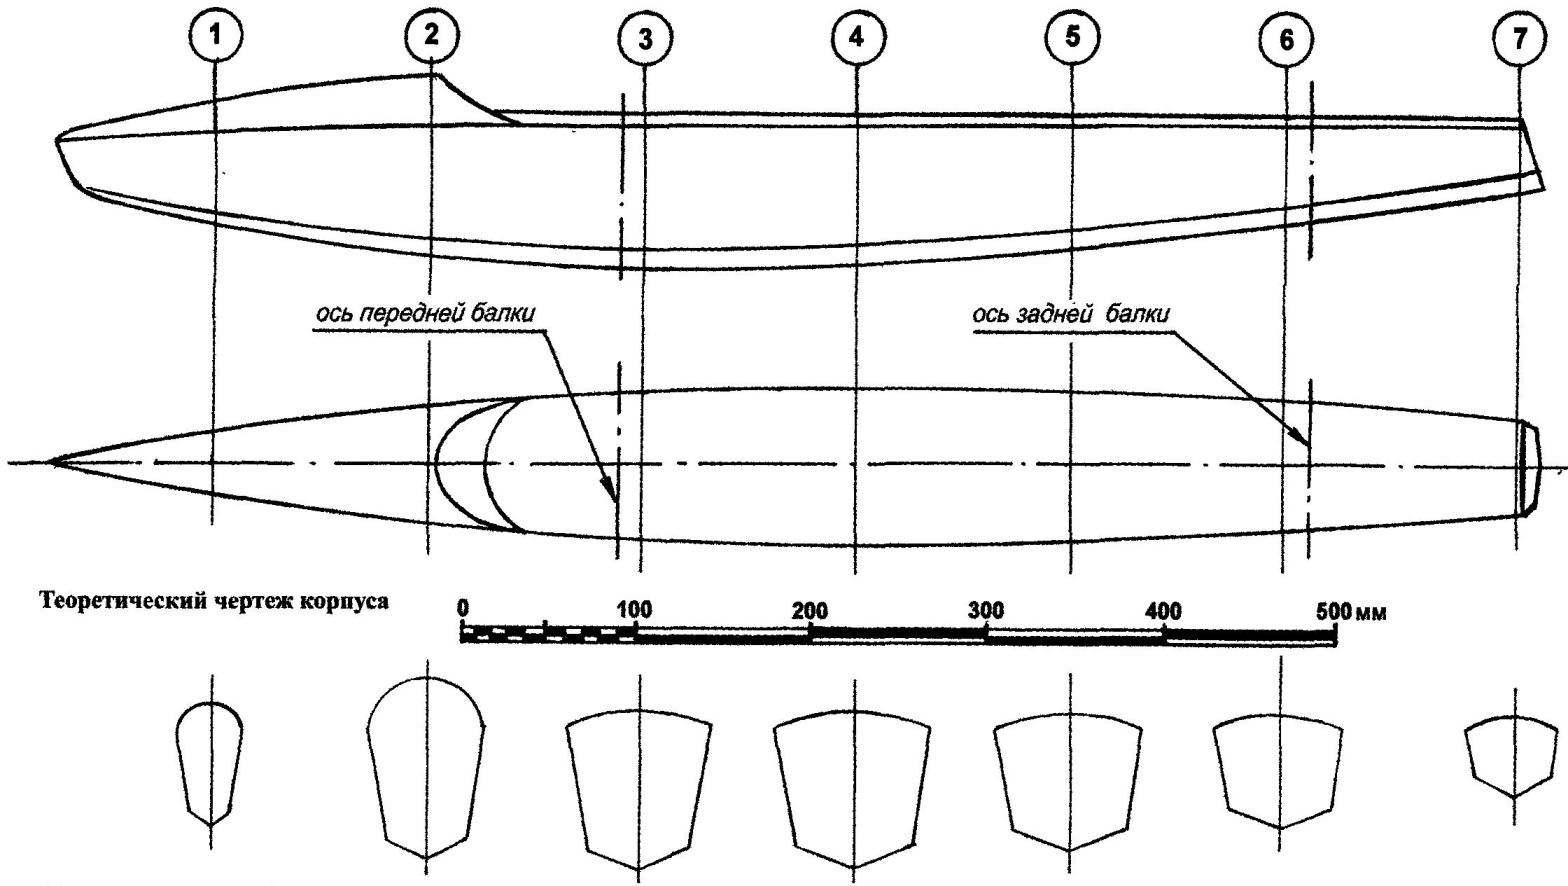 The theoretical drawing of the hull